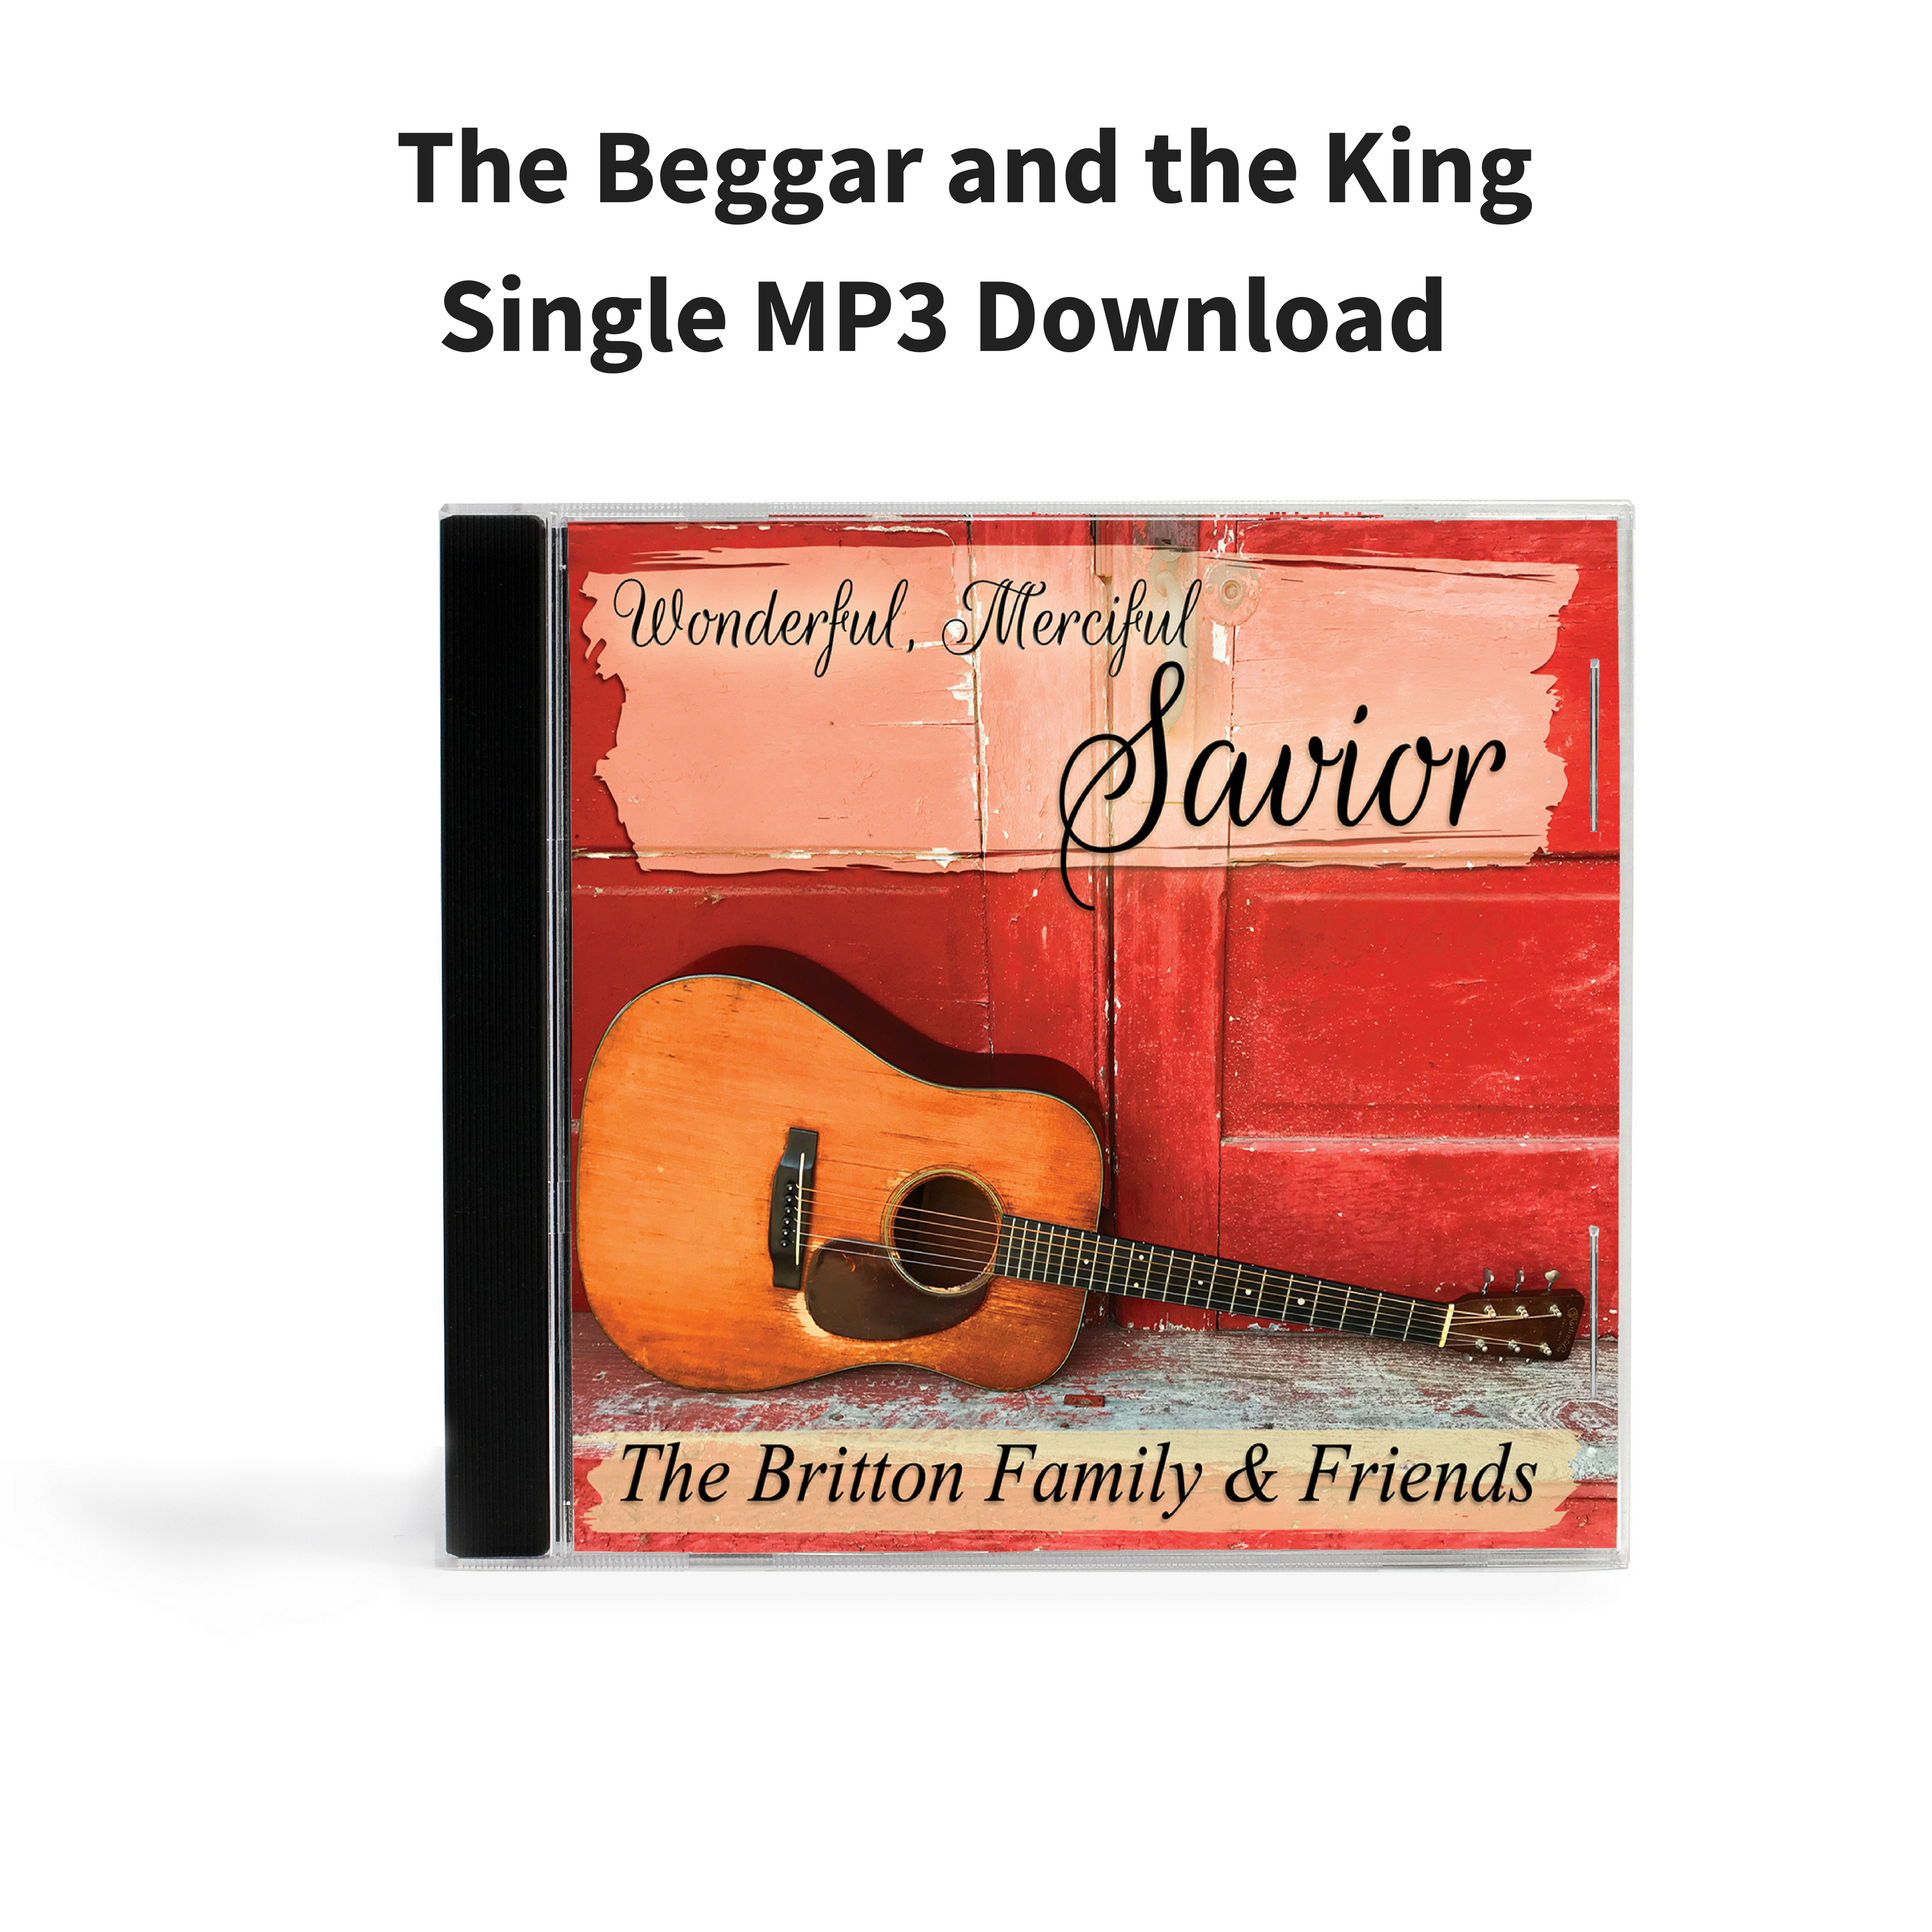 The Beggar and the King - Single MP3 Download 000003